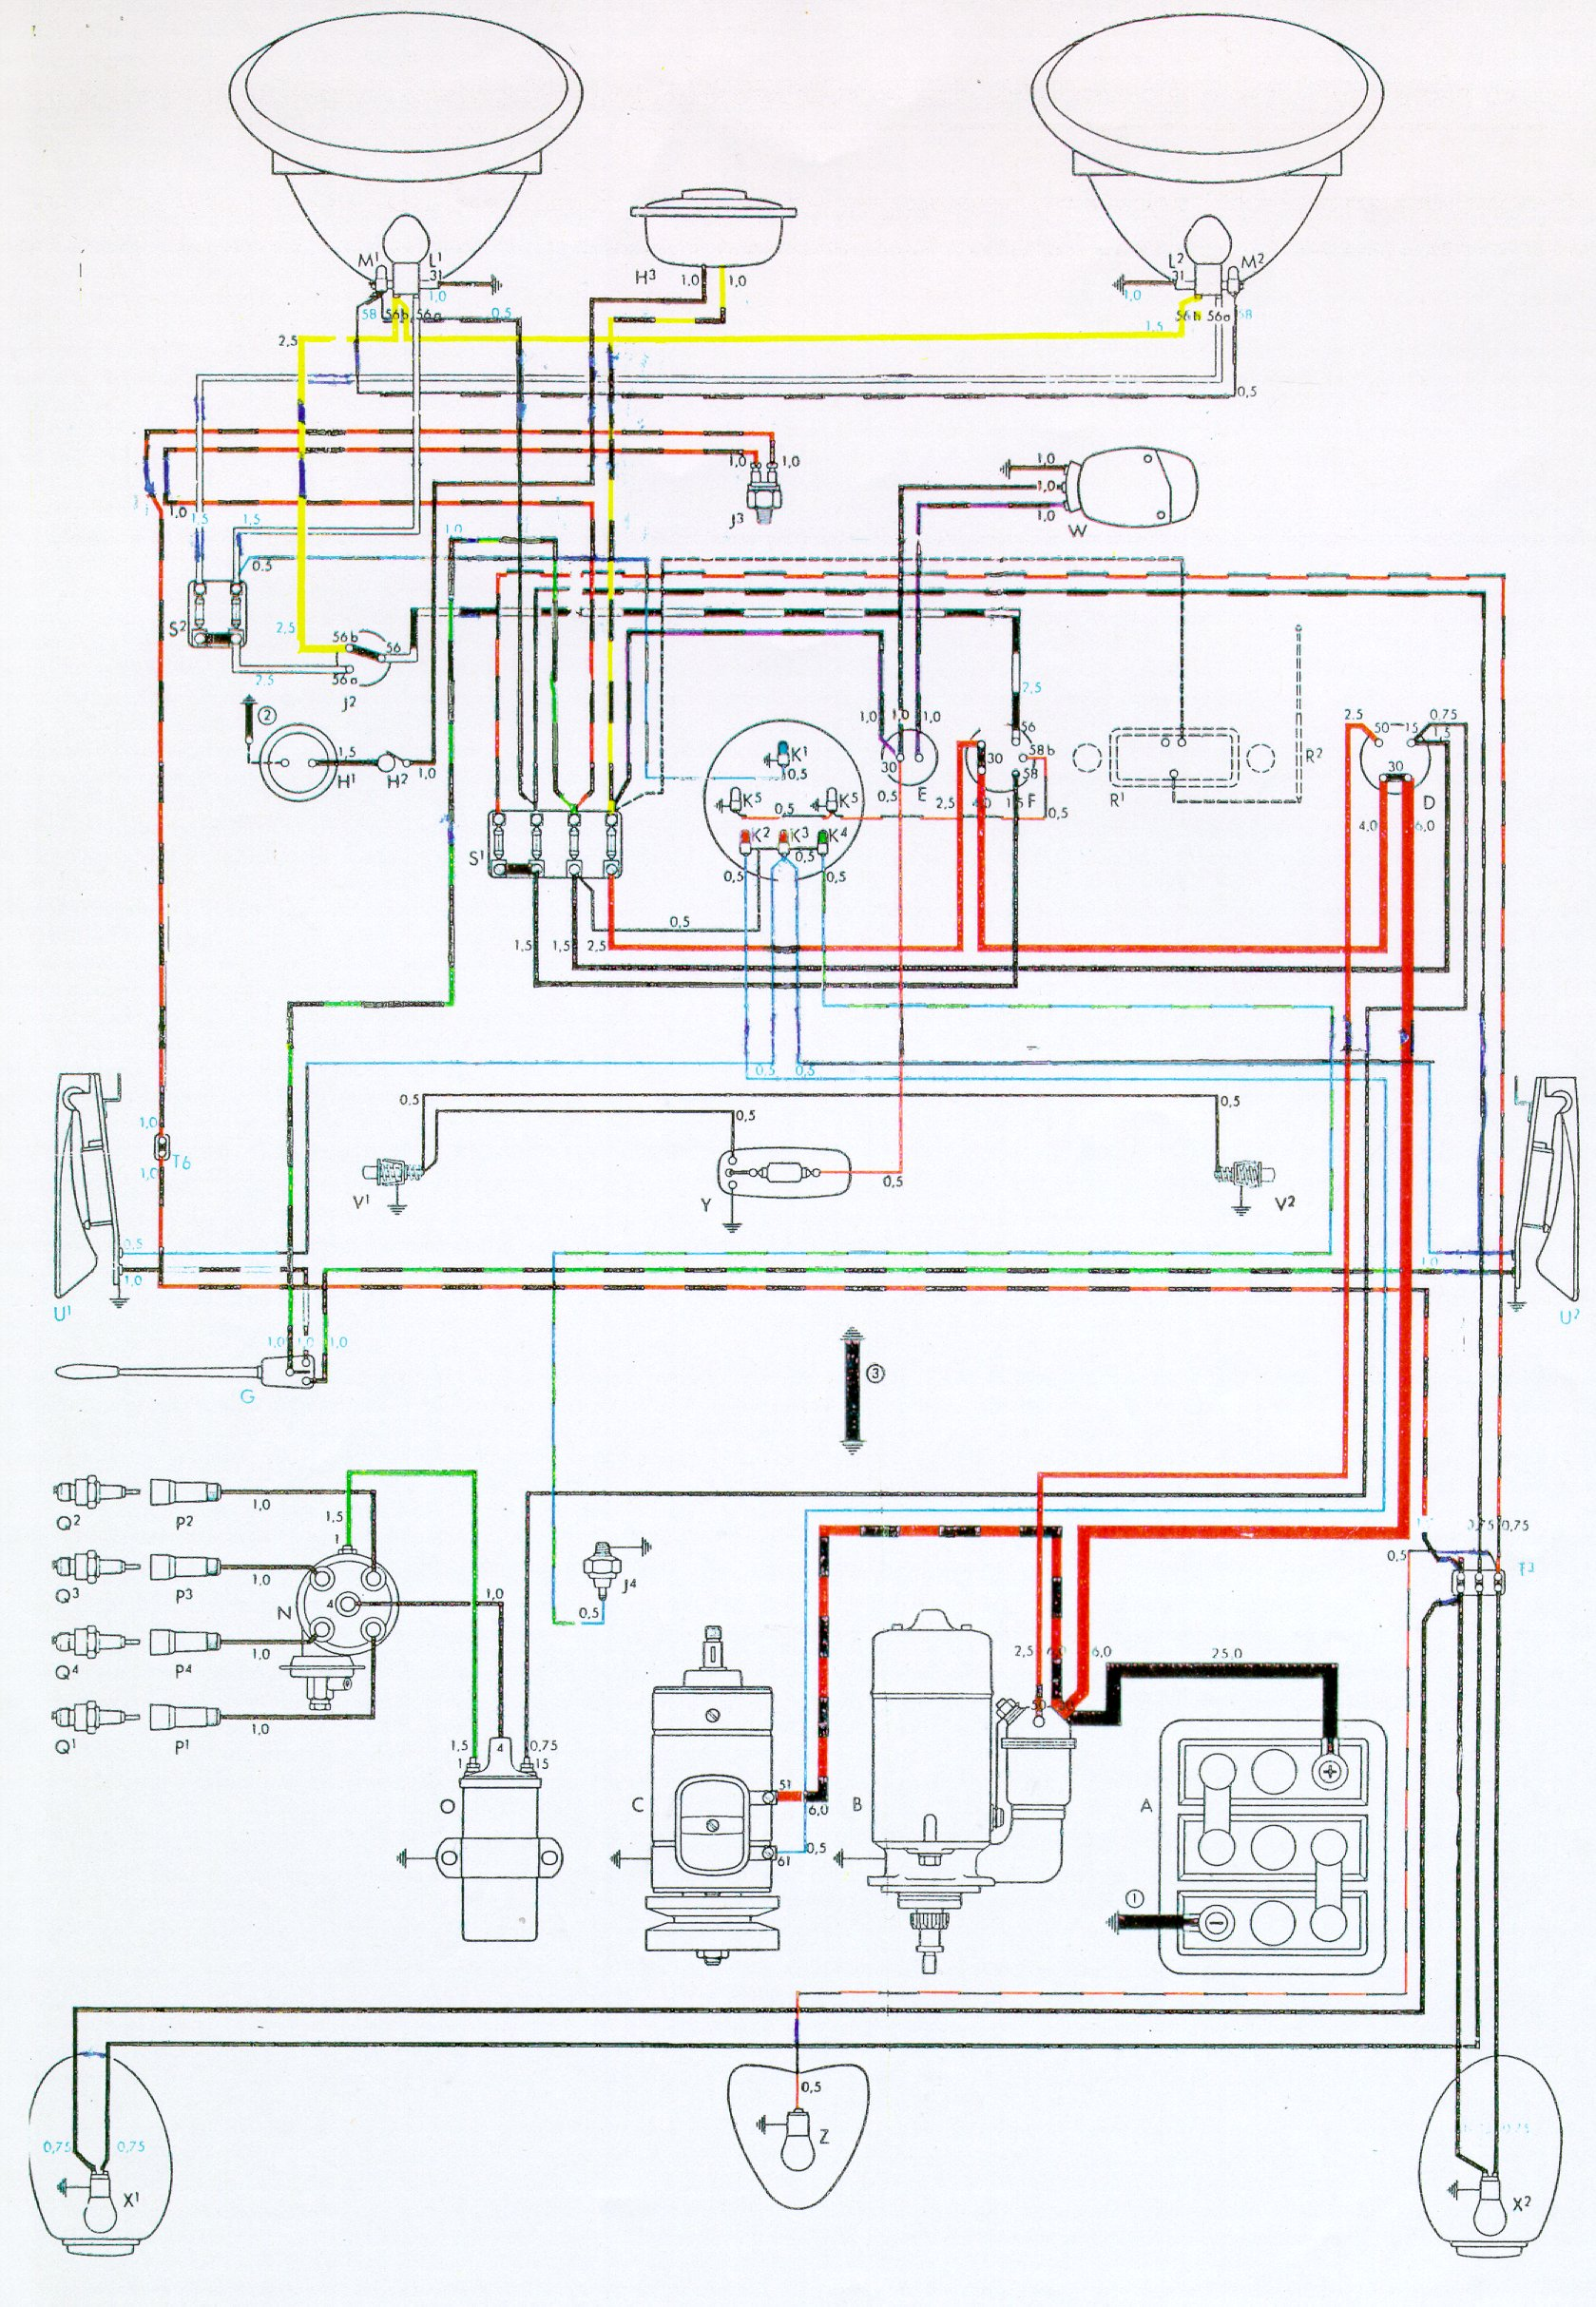 bug 54 vw bug wiring 1969 vw starter wiring diagram \u2022 wiring diagrams j Volkswagen Type 2 Wiring Harness at mifinder.co